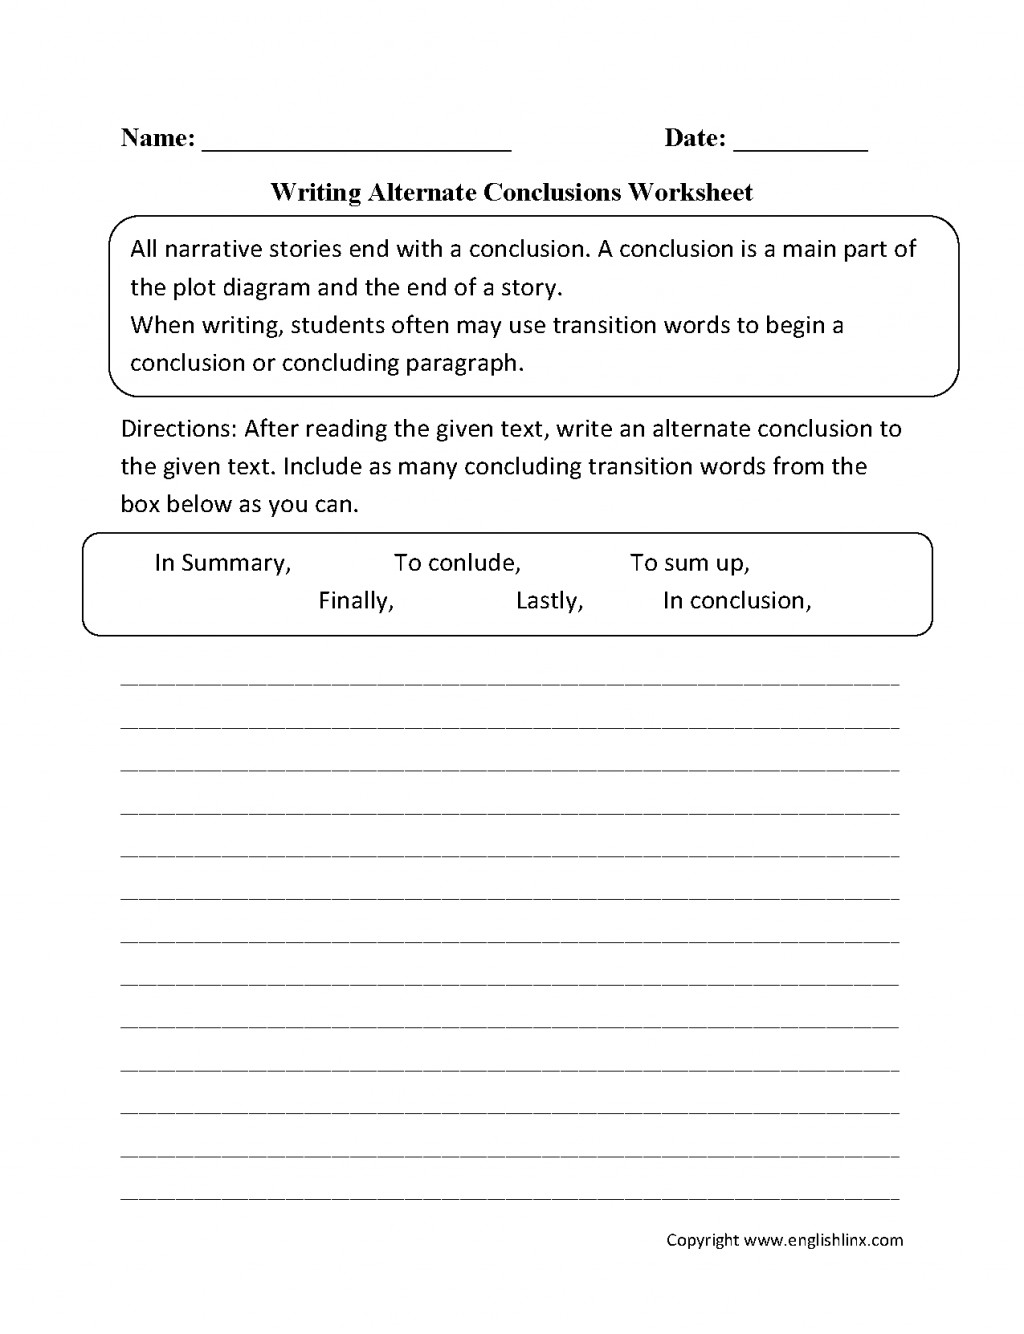 027 Englishlinx Writing Conclusions Worksheets Pertaining To Conclusion Paragraph Examples 5th Grade Research Impressive High School Example For Persuasive Essay Essays Large